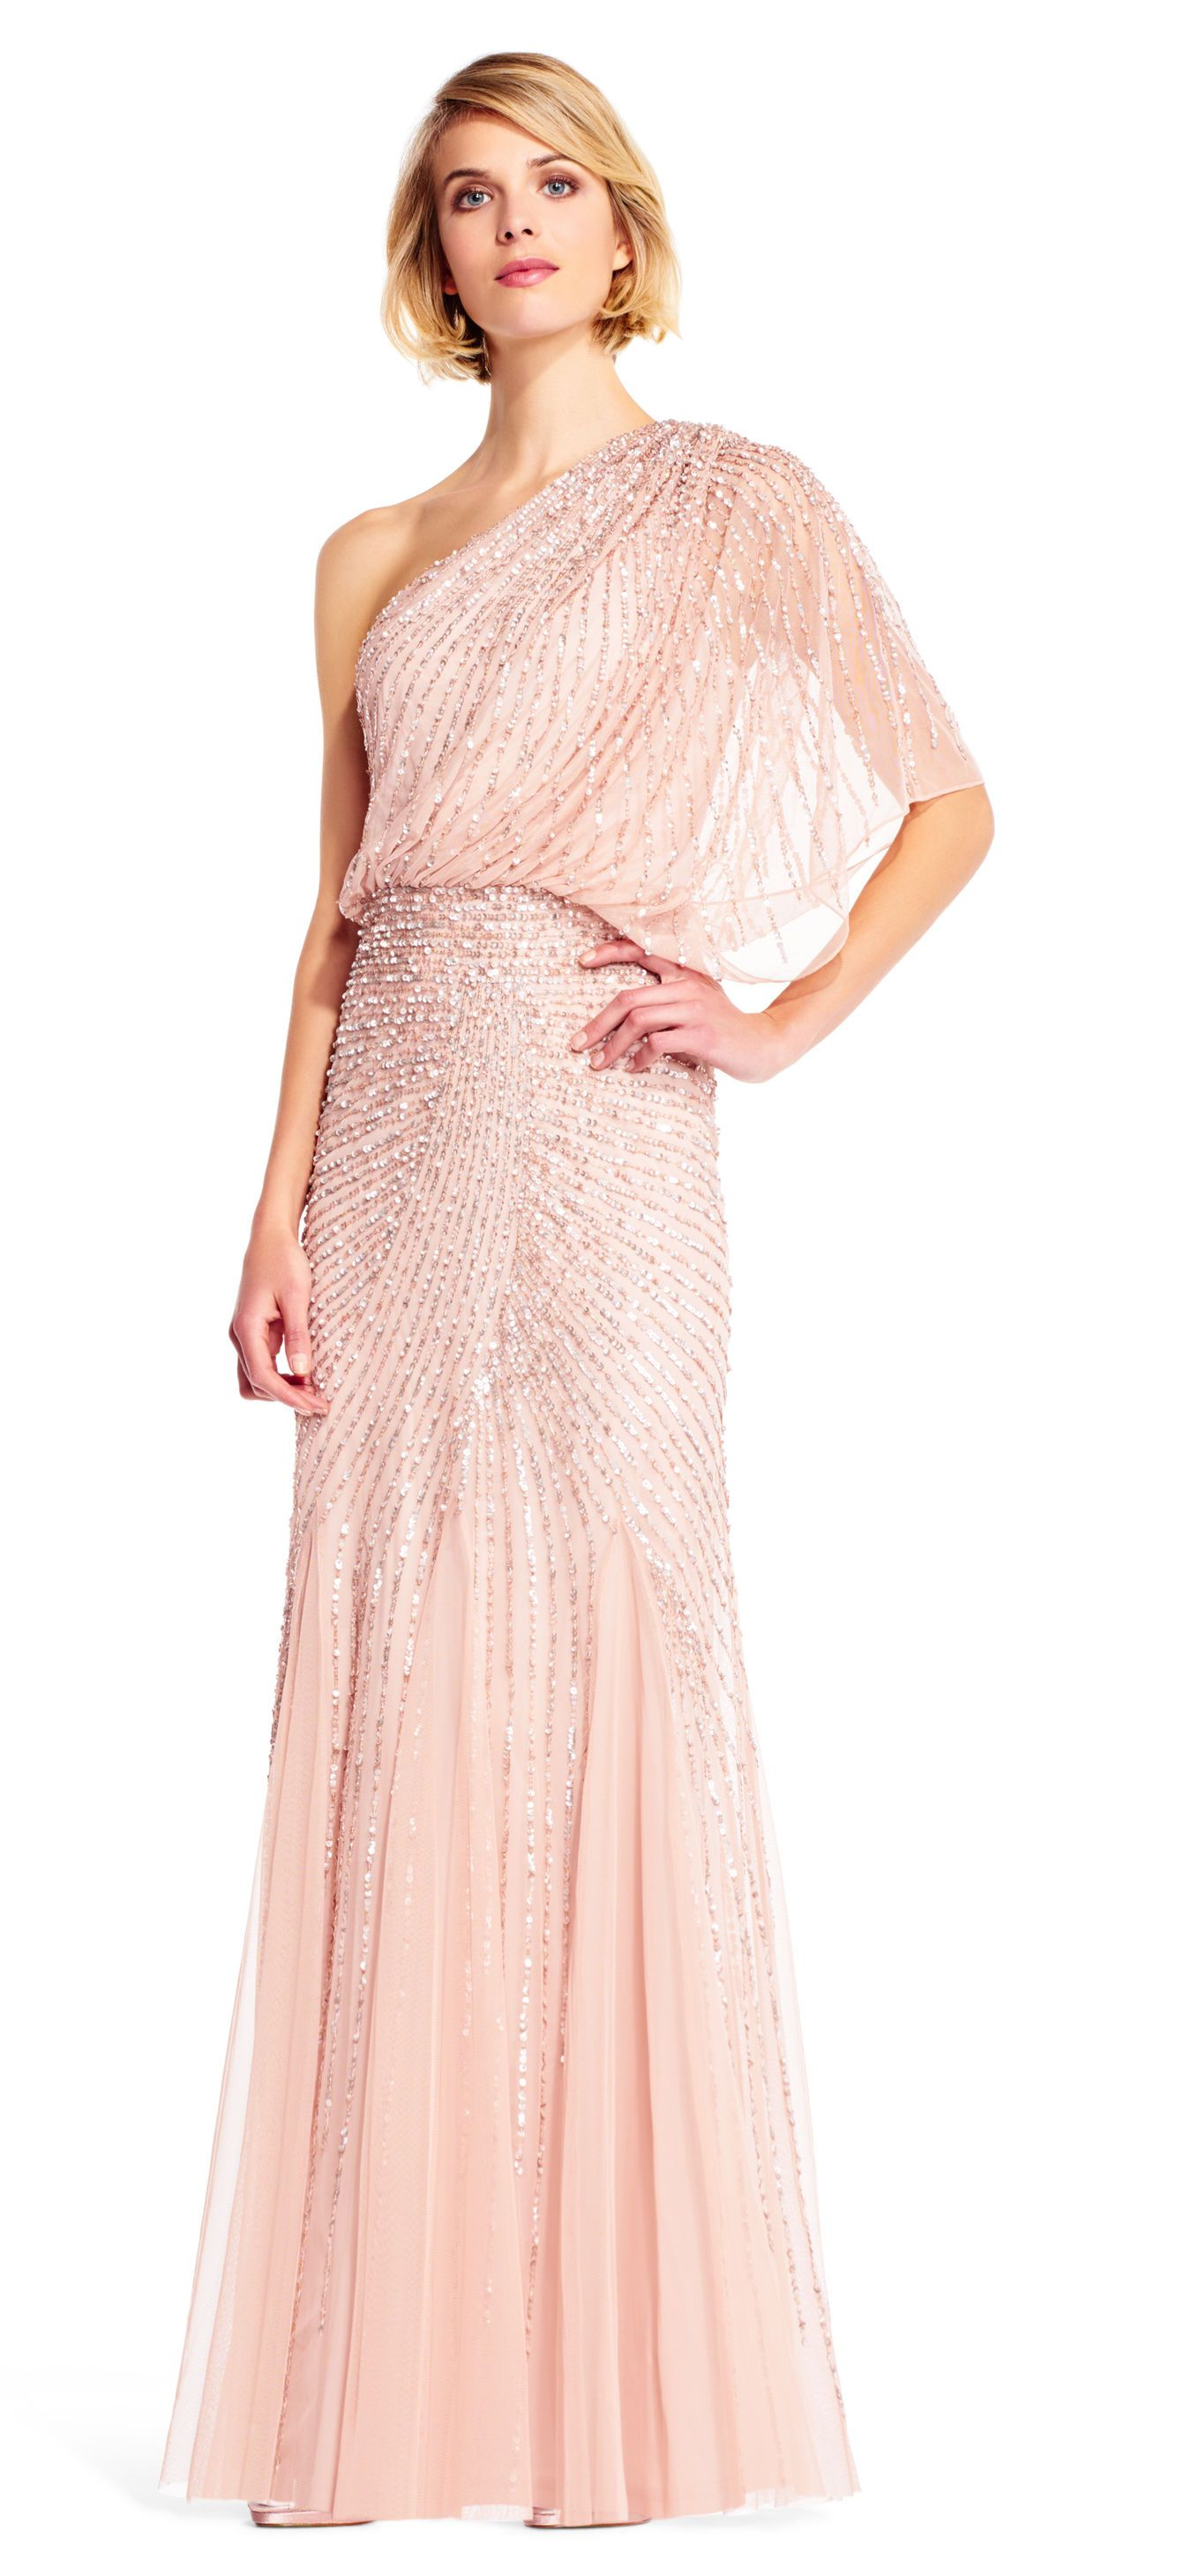 Adrianna Papell | One Shoulder Beaded Blouson Gown with Godet Skirt ...